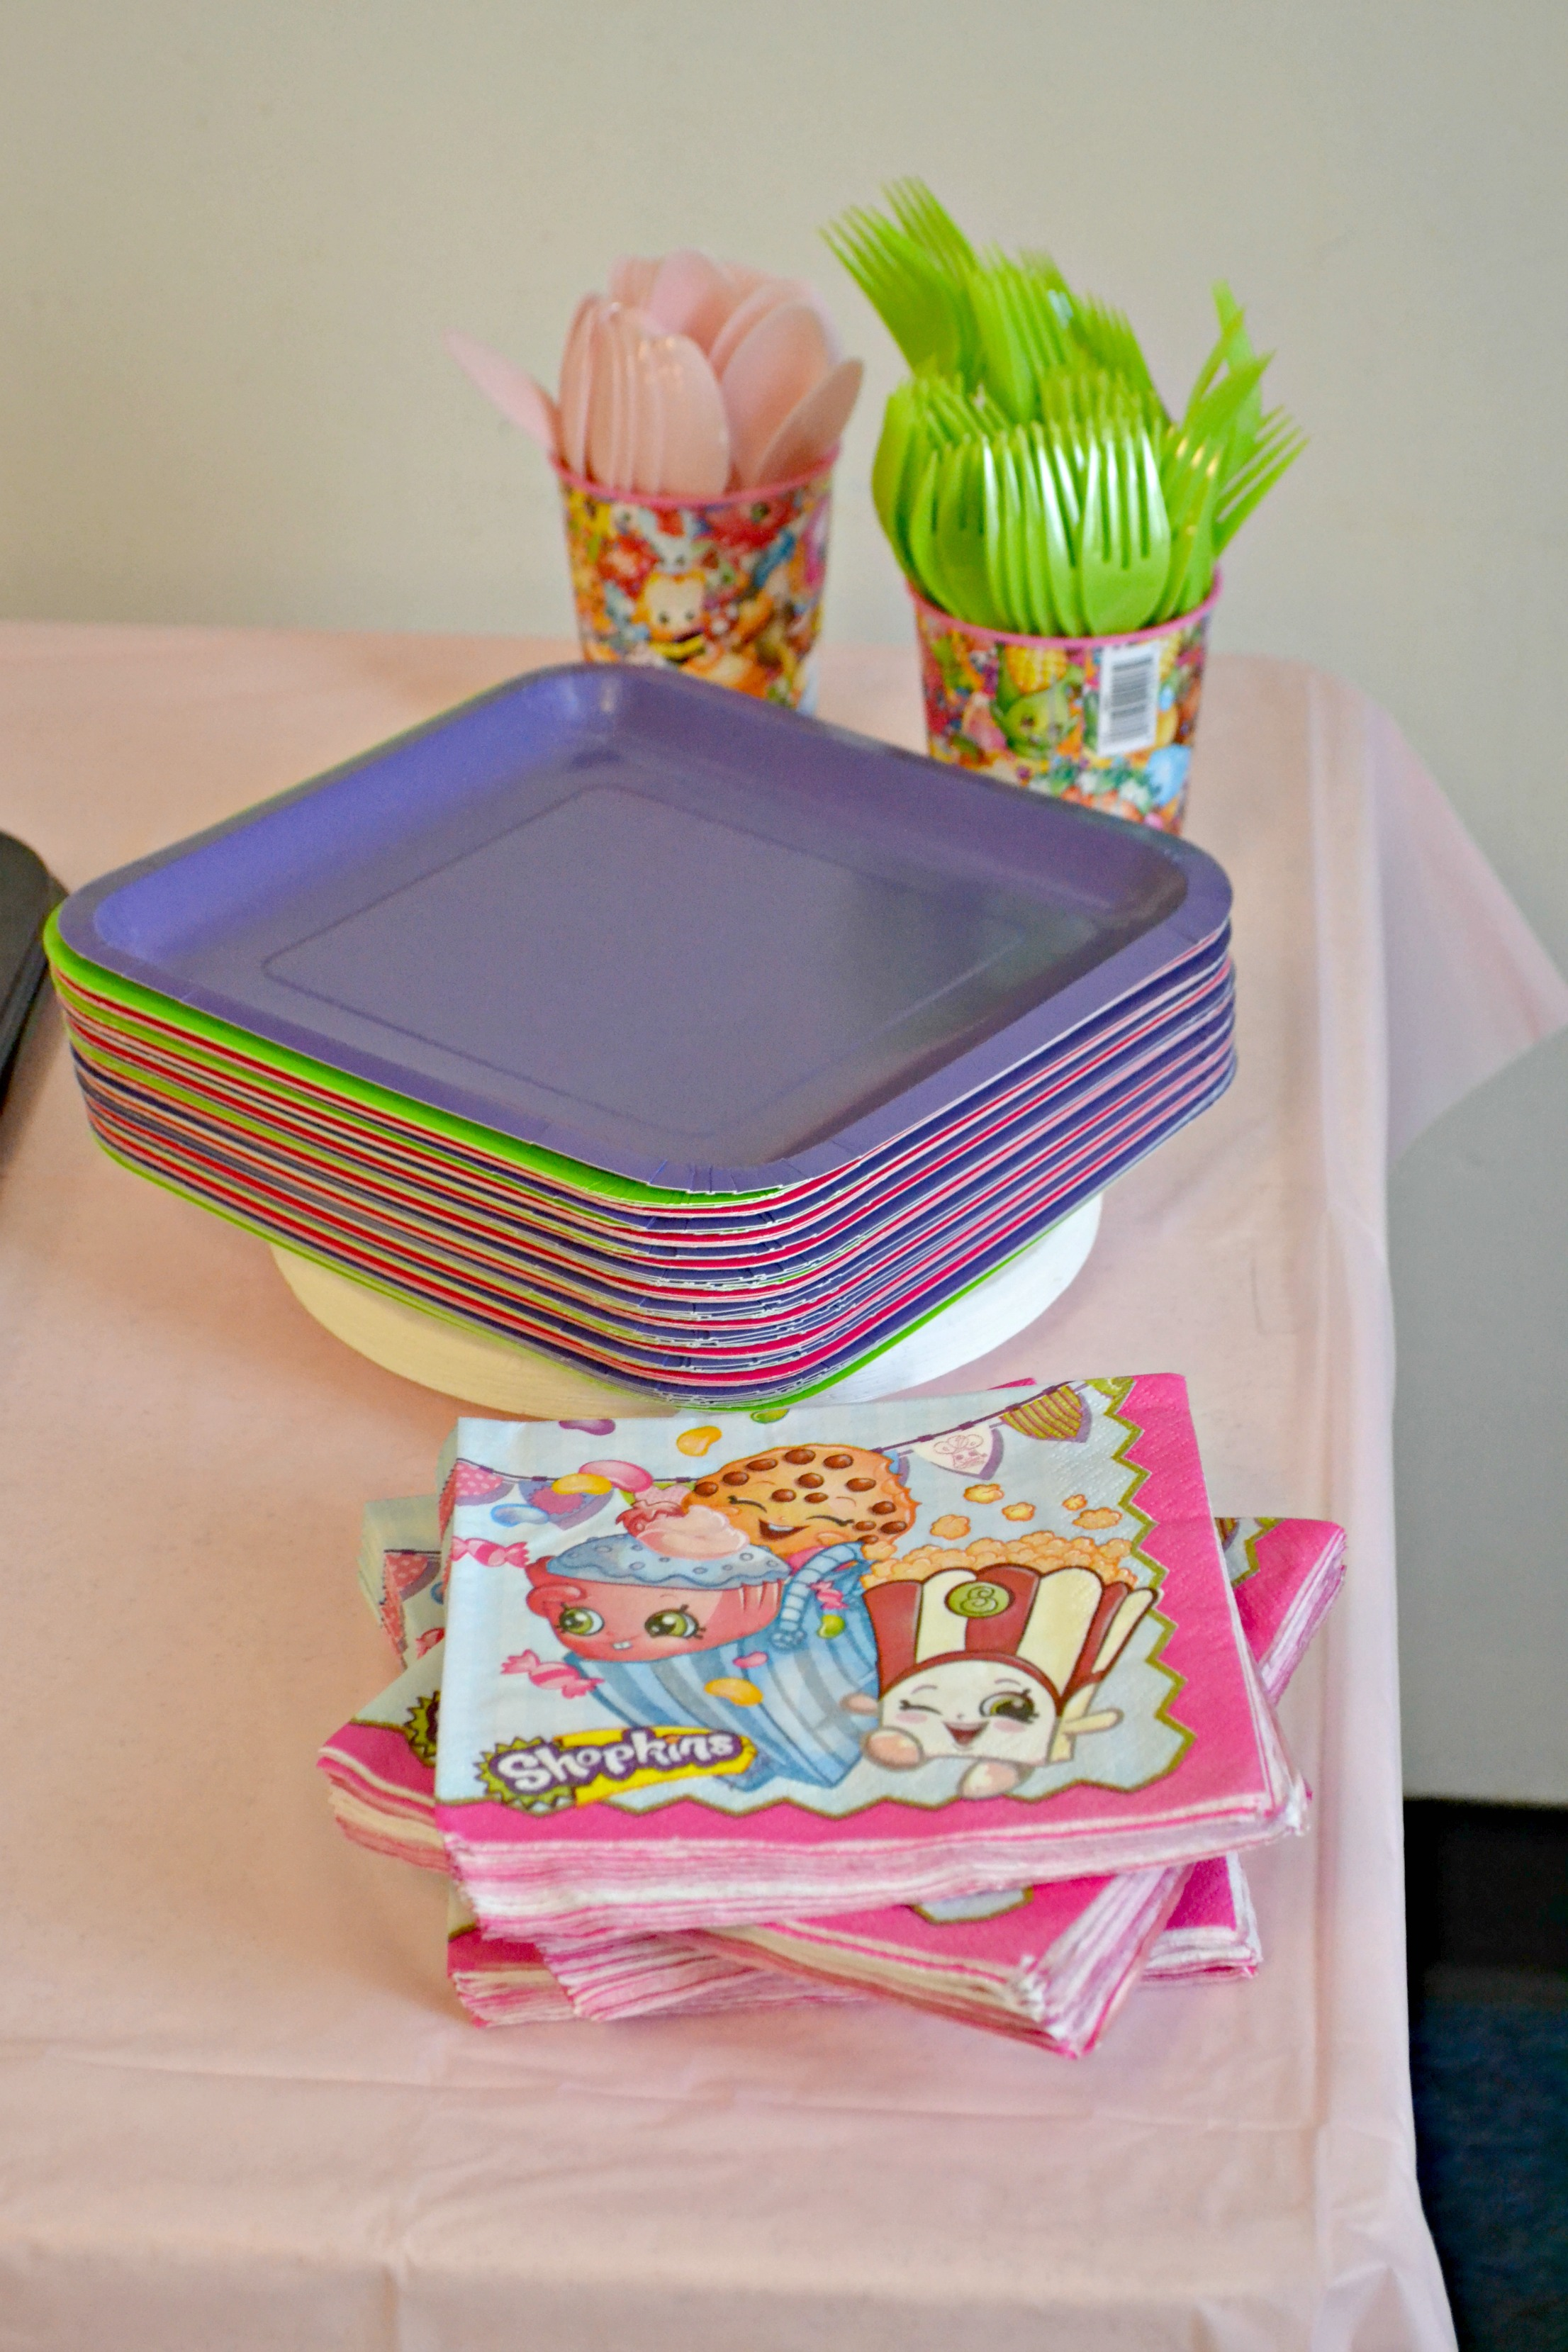 Planning a shopkins birthday party, shopkins party, shopkins birthday party, shopkins party food, shopkins party ideas, shopkins party decorations, shopkins birthday party decorations, how to throw a shopkins party, shopkins birthday party printables, throwing a Shopkins birthday party